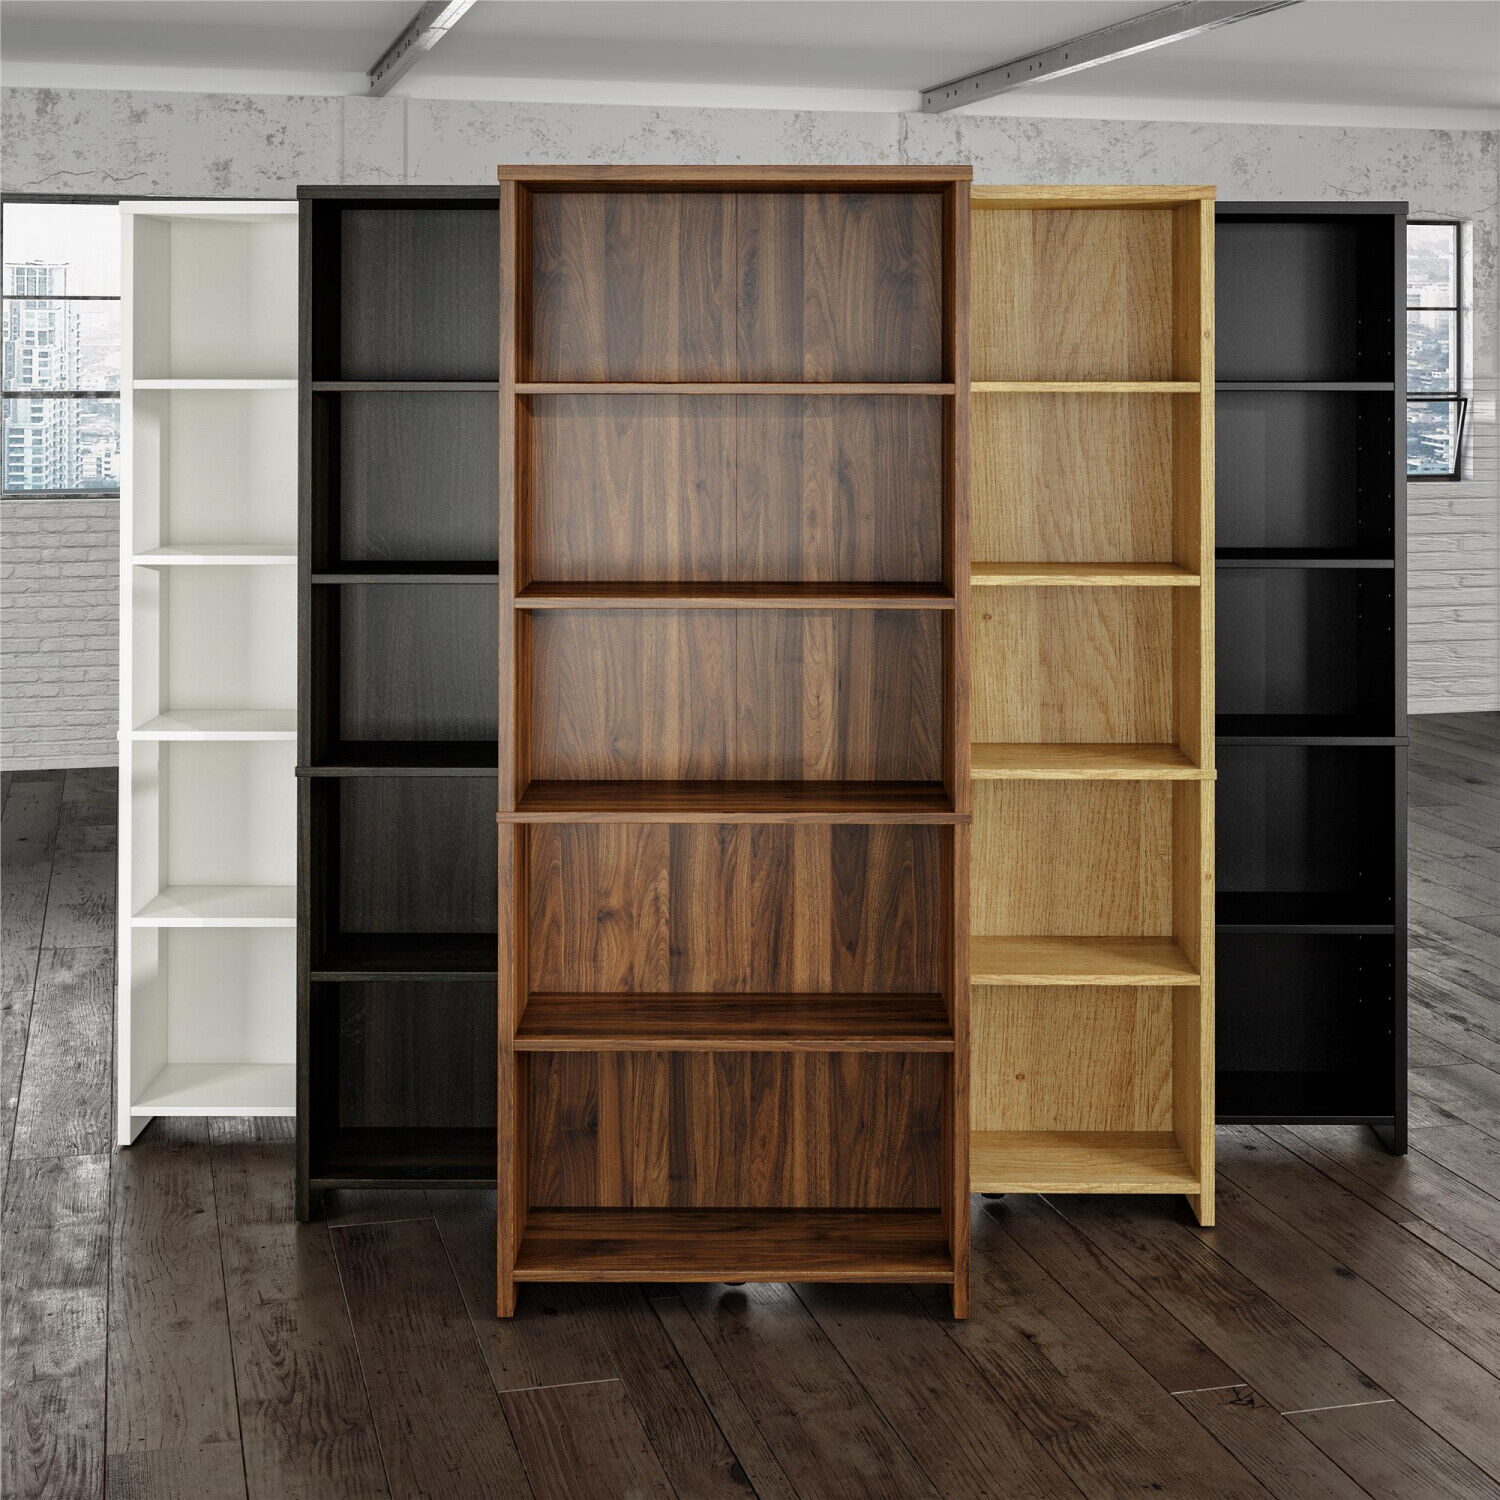 72 Inch Tall 5 Shelf Bookcase Closed Bookshelf Storage Adjustable Shelves Wood